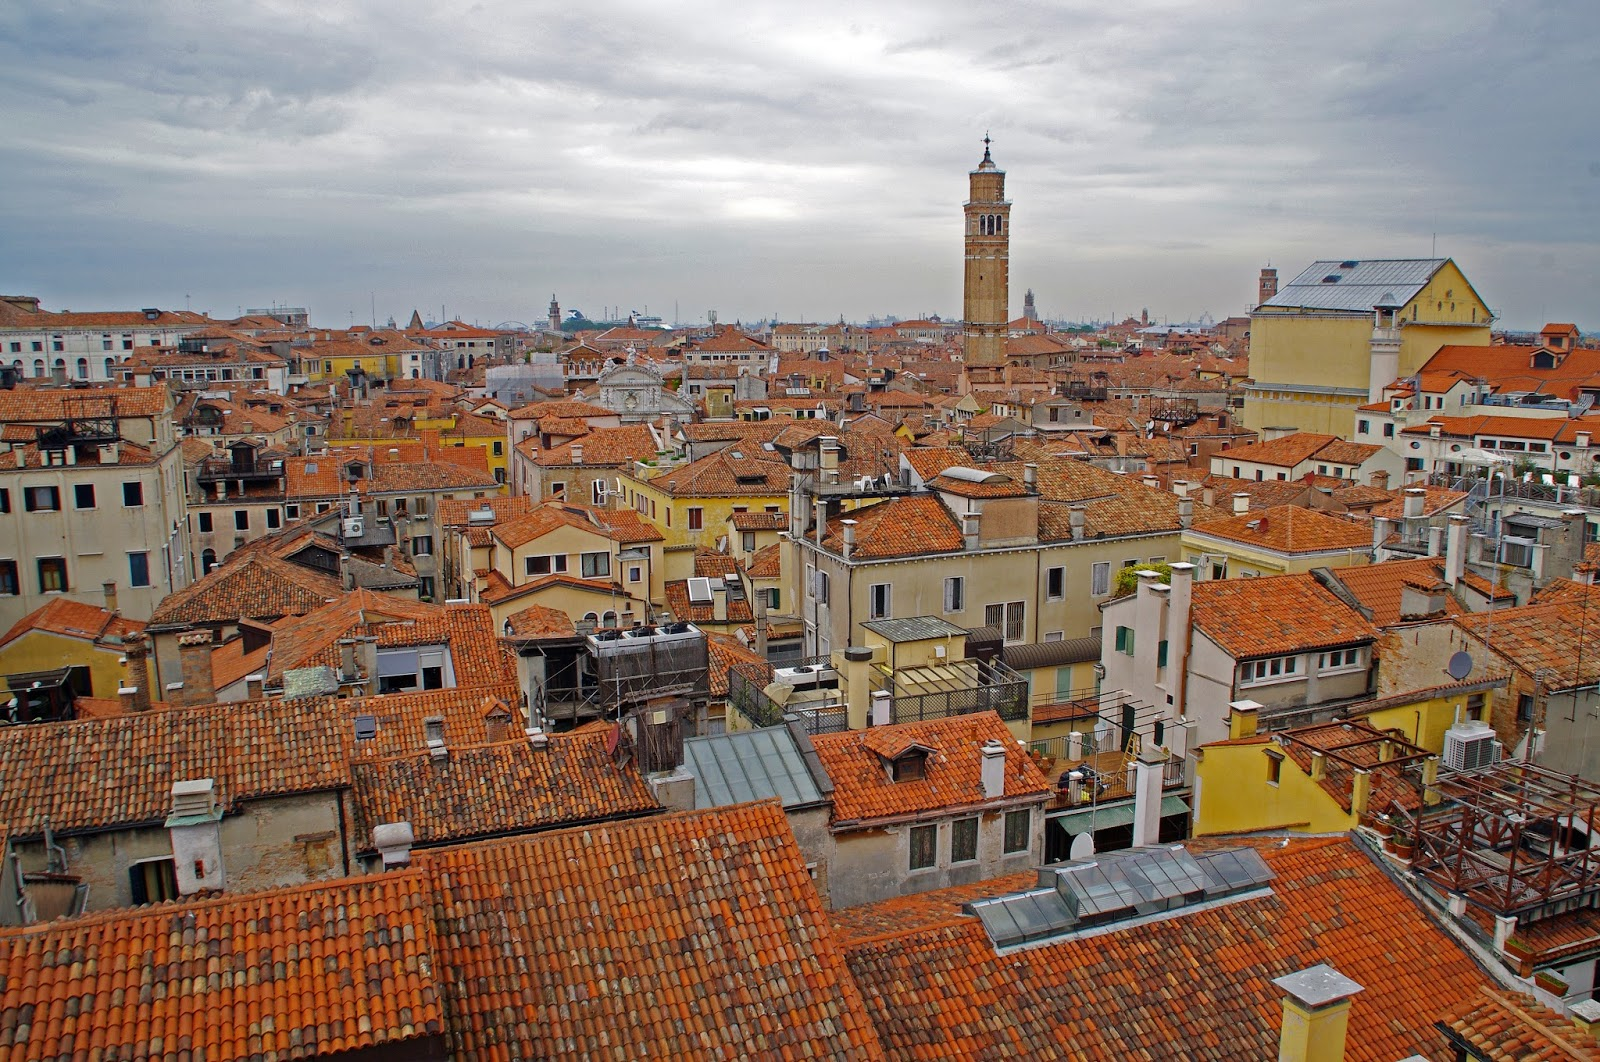 Westin Europa & Regina views from rooftop of Venice